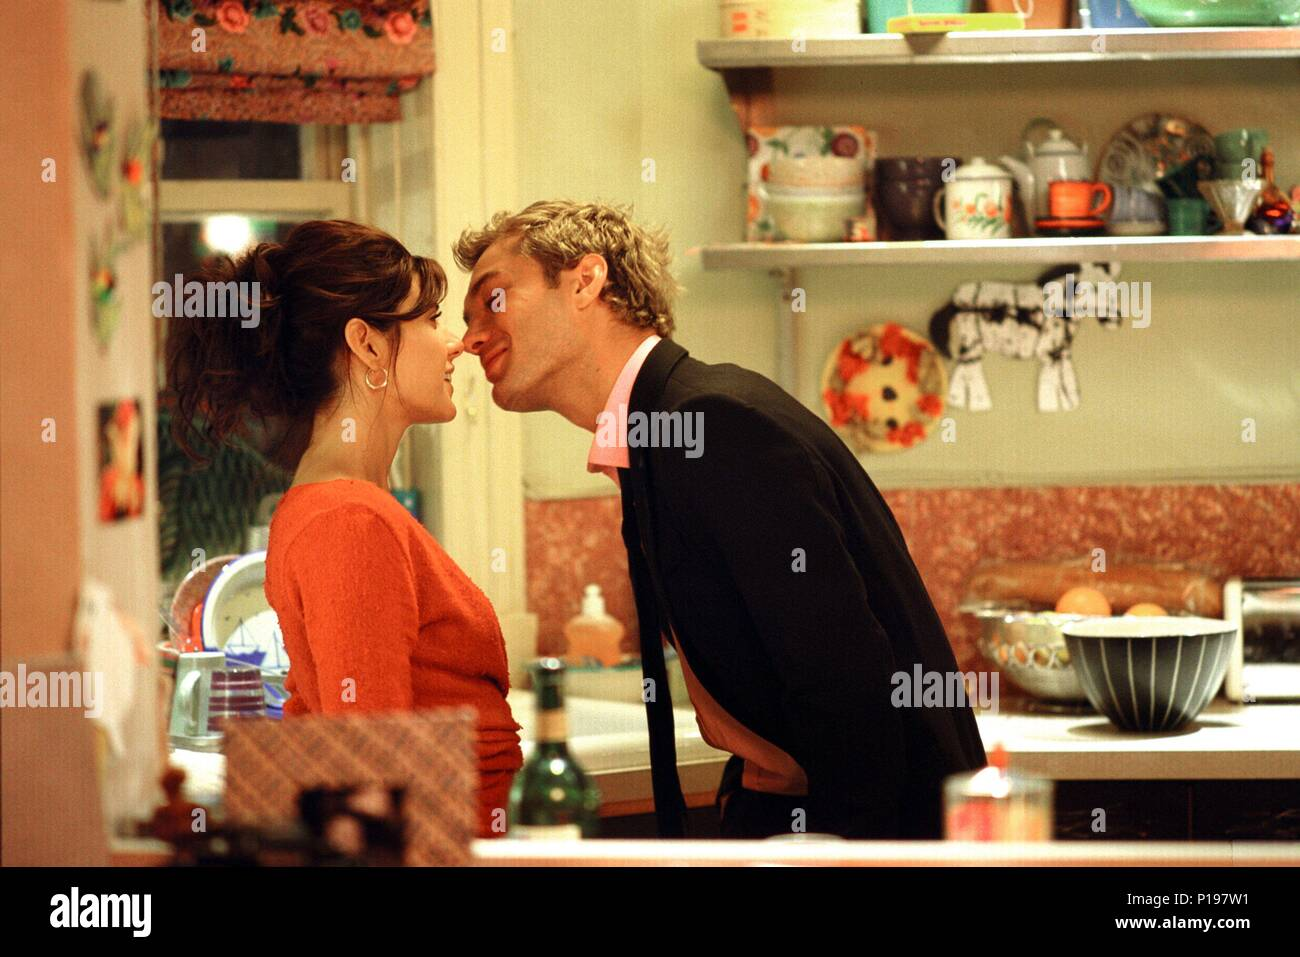 Original Film Title: ALFIE.  English Title: ALFIE.  Film Director: CHARLES SHYER.  Year: 2004.  Stars: JUDE LAW; MARISA TOMEI. Credit: PARAMOUNT PICTURES / Album - Stock Image